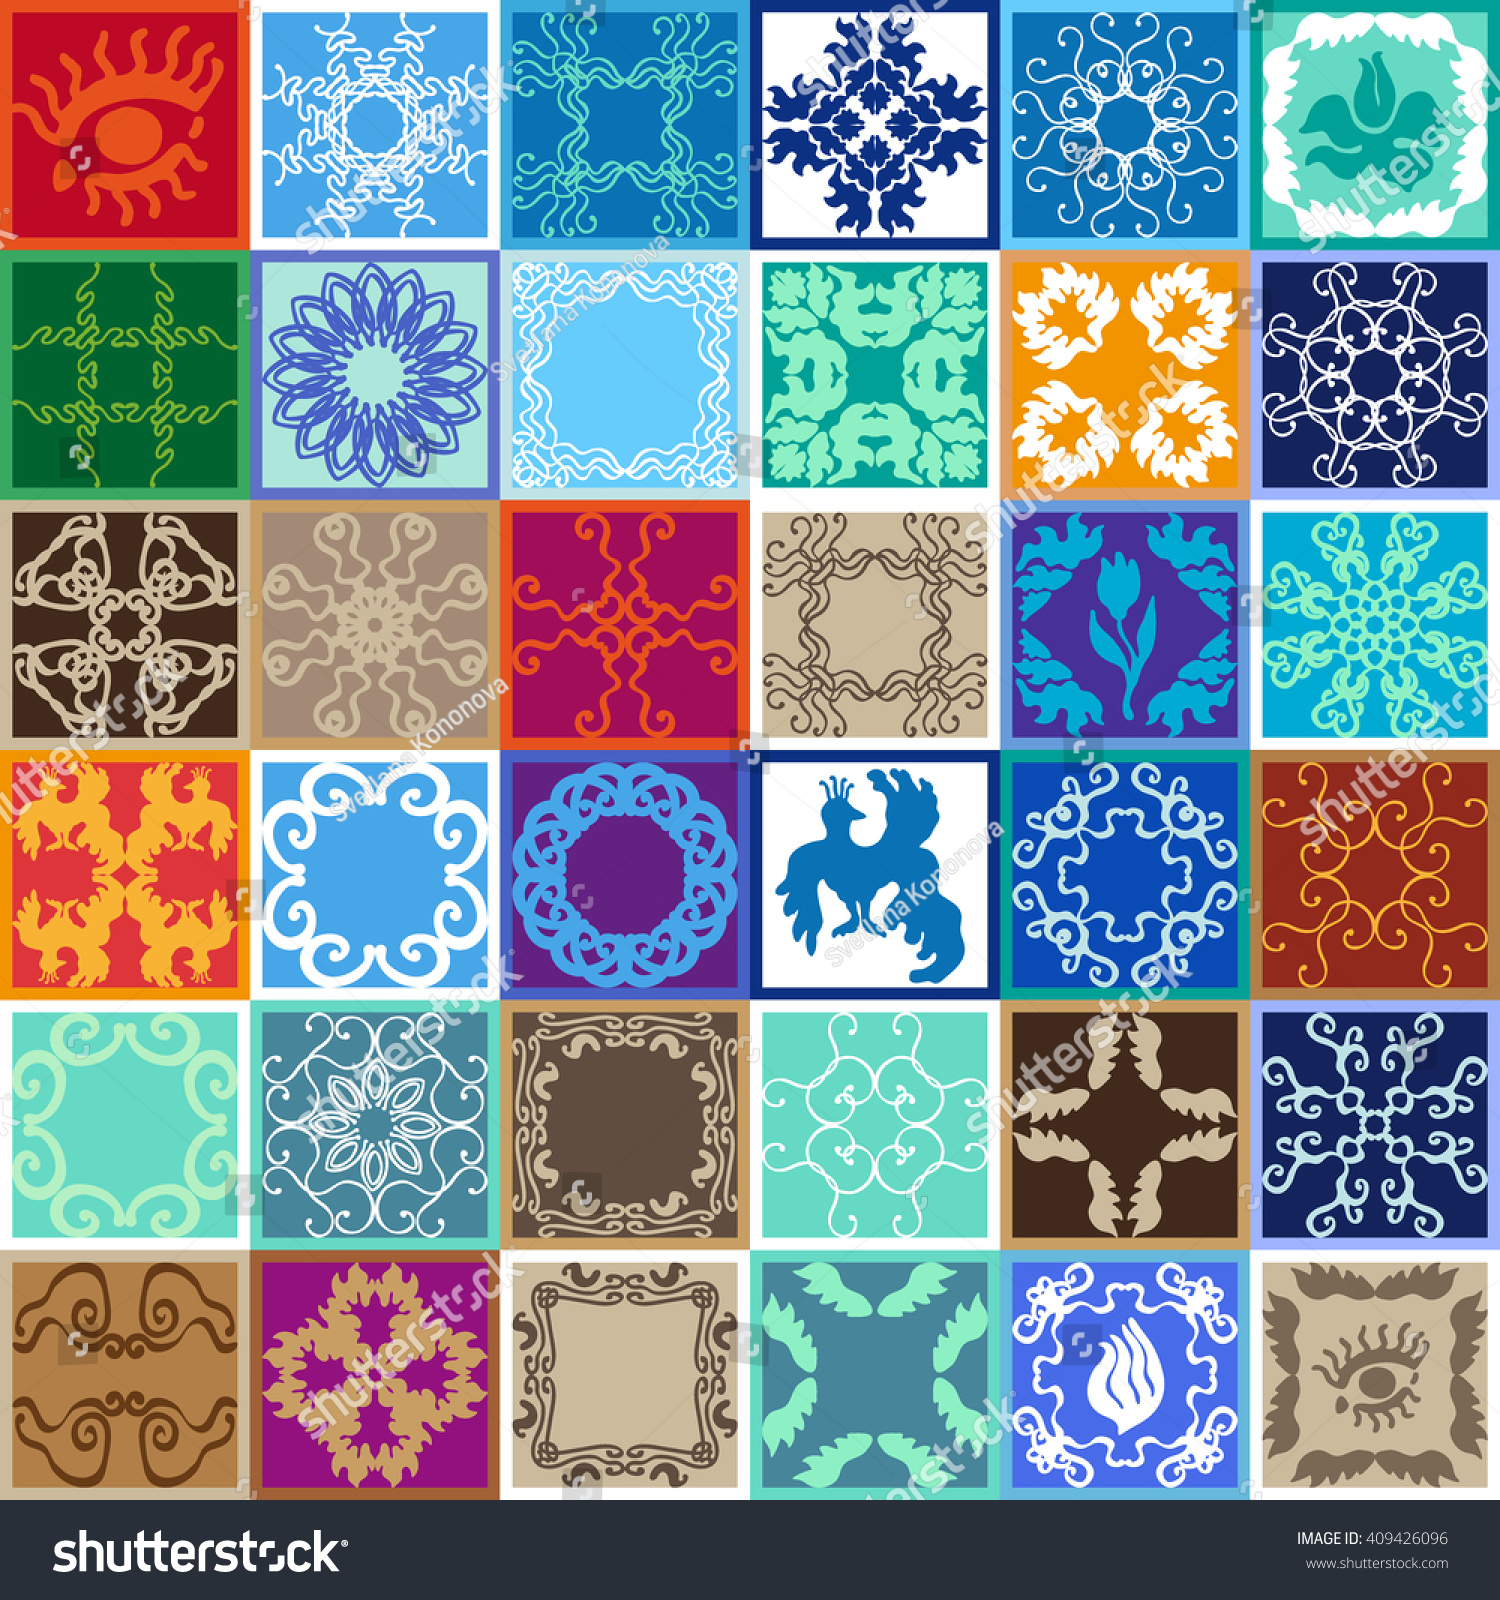 Set Glazed Ceramic Tiles Colorful Tiled Stock Photo (Photo, Vector ...